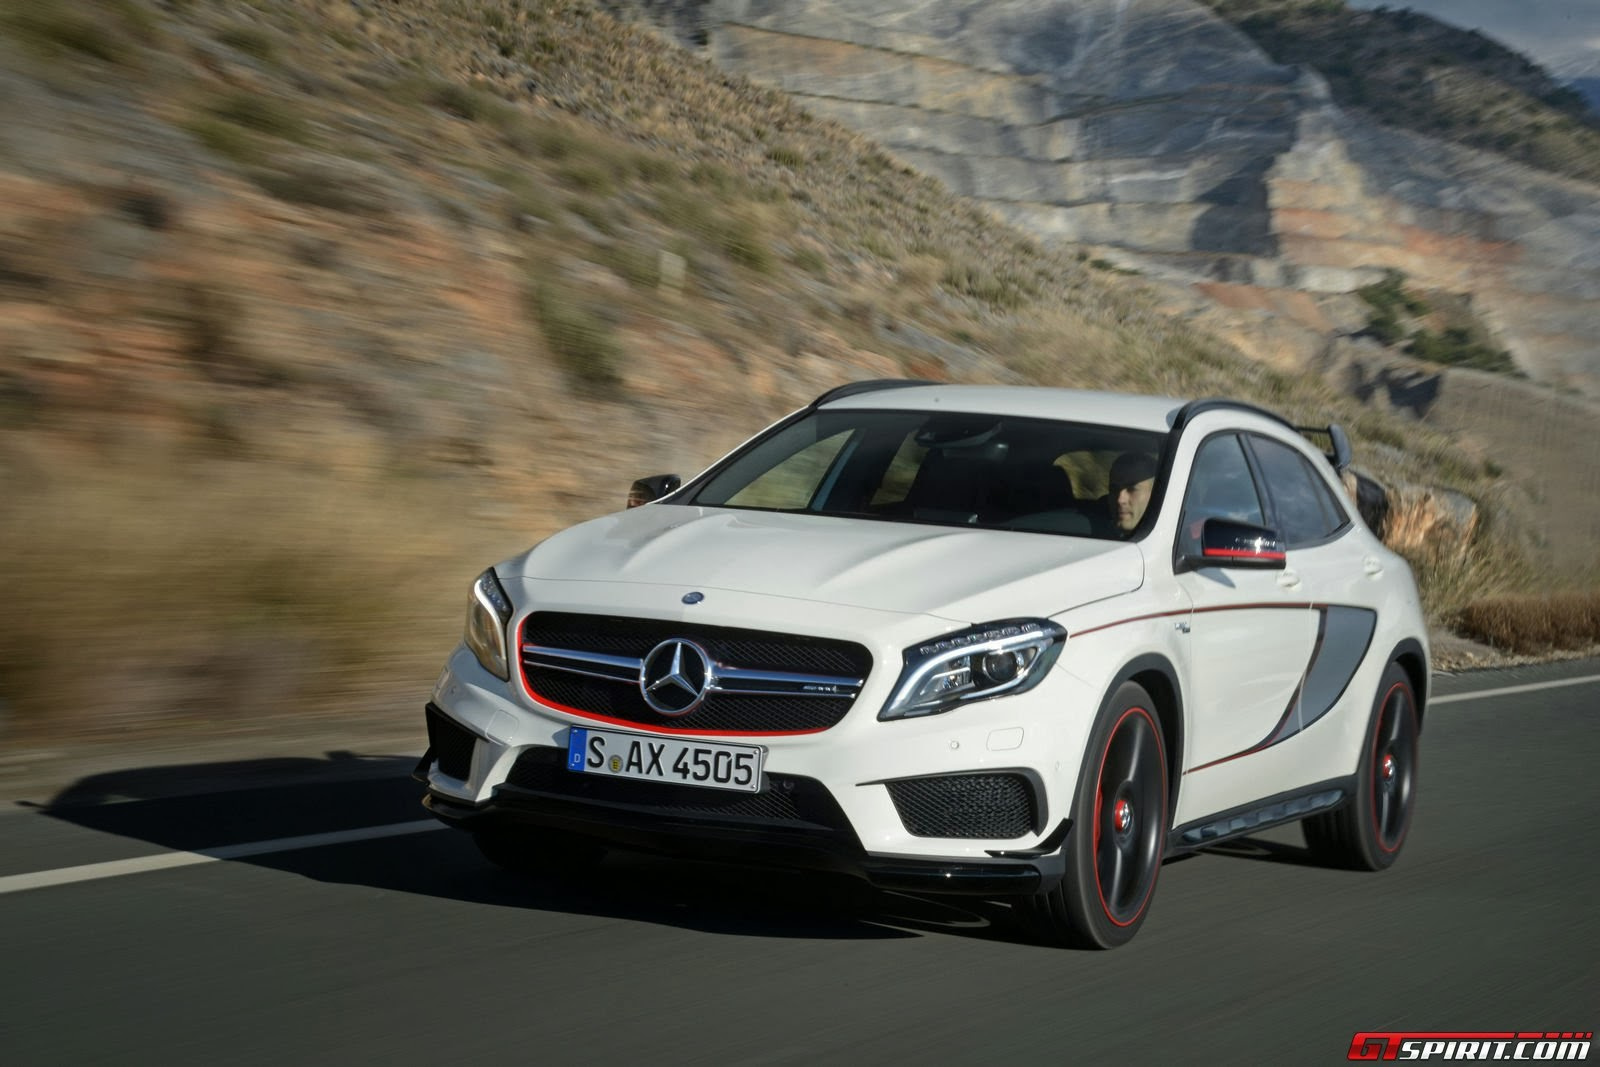 2015 mercedes benz gla 45 amg nimble and dynamic mycarzilla for Mercedes benz 2015 gla